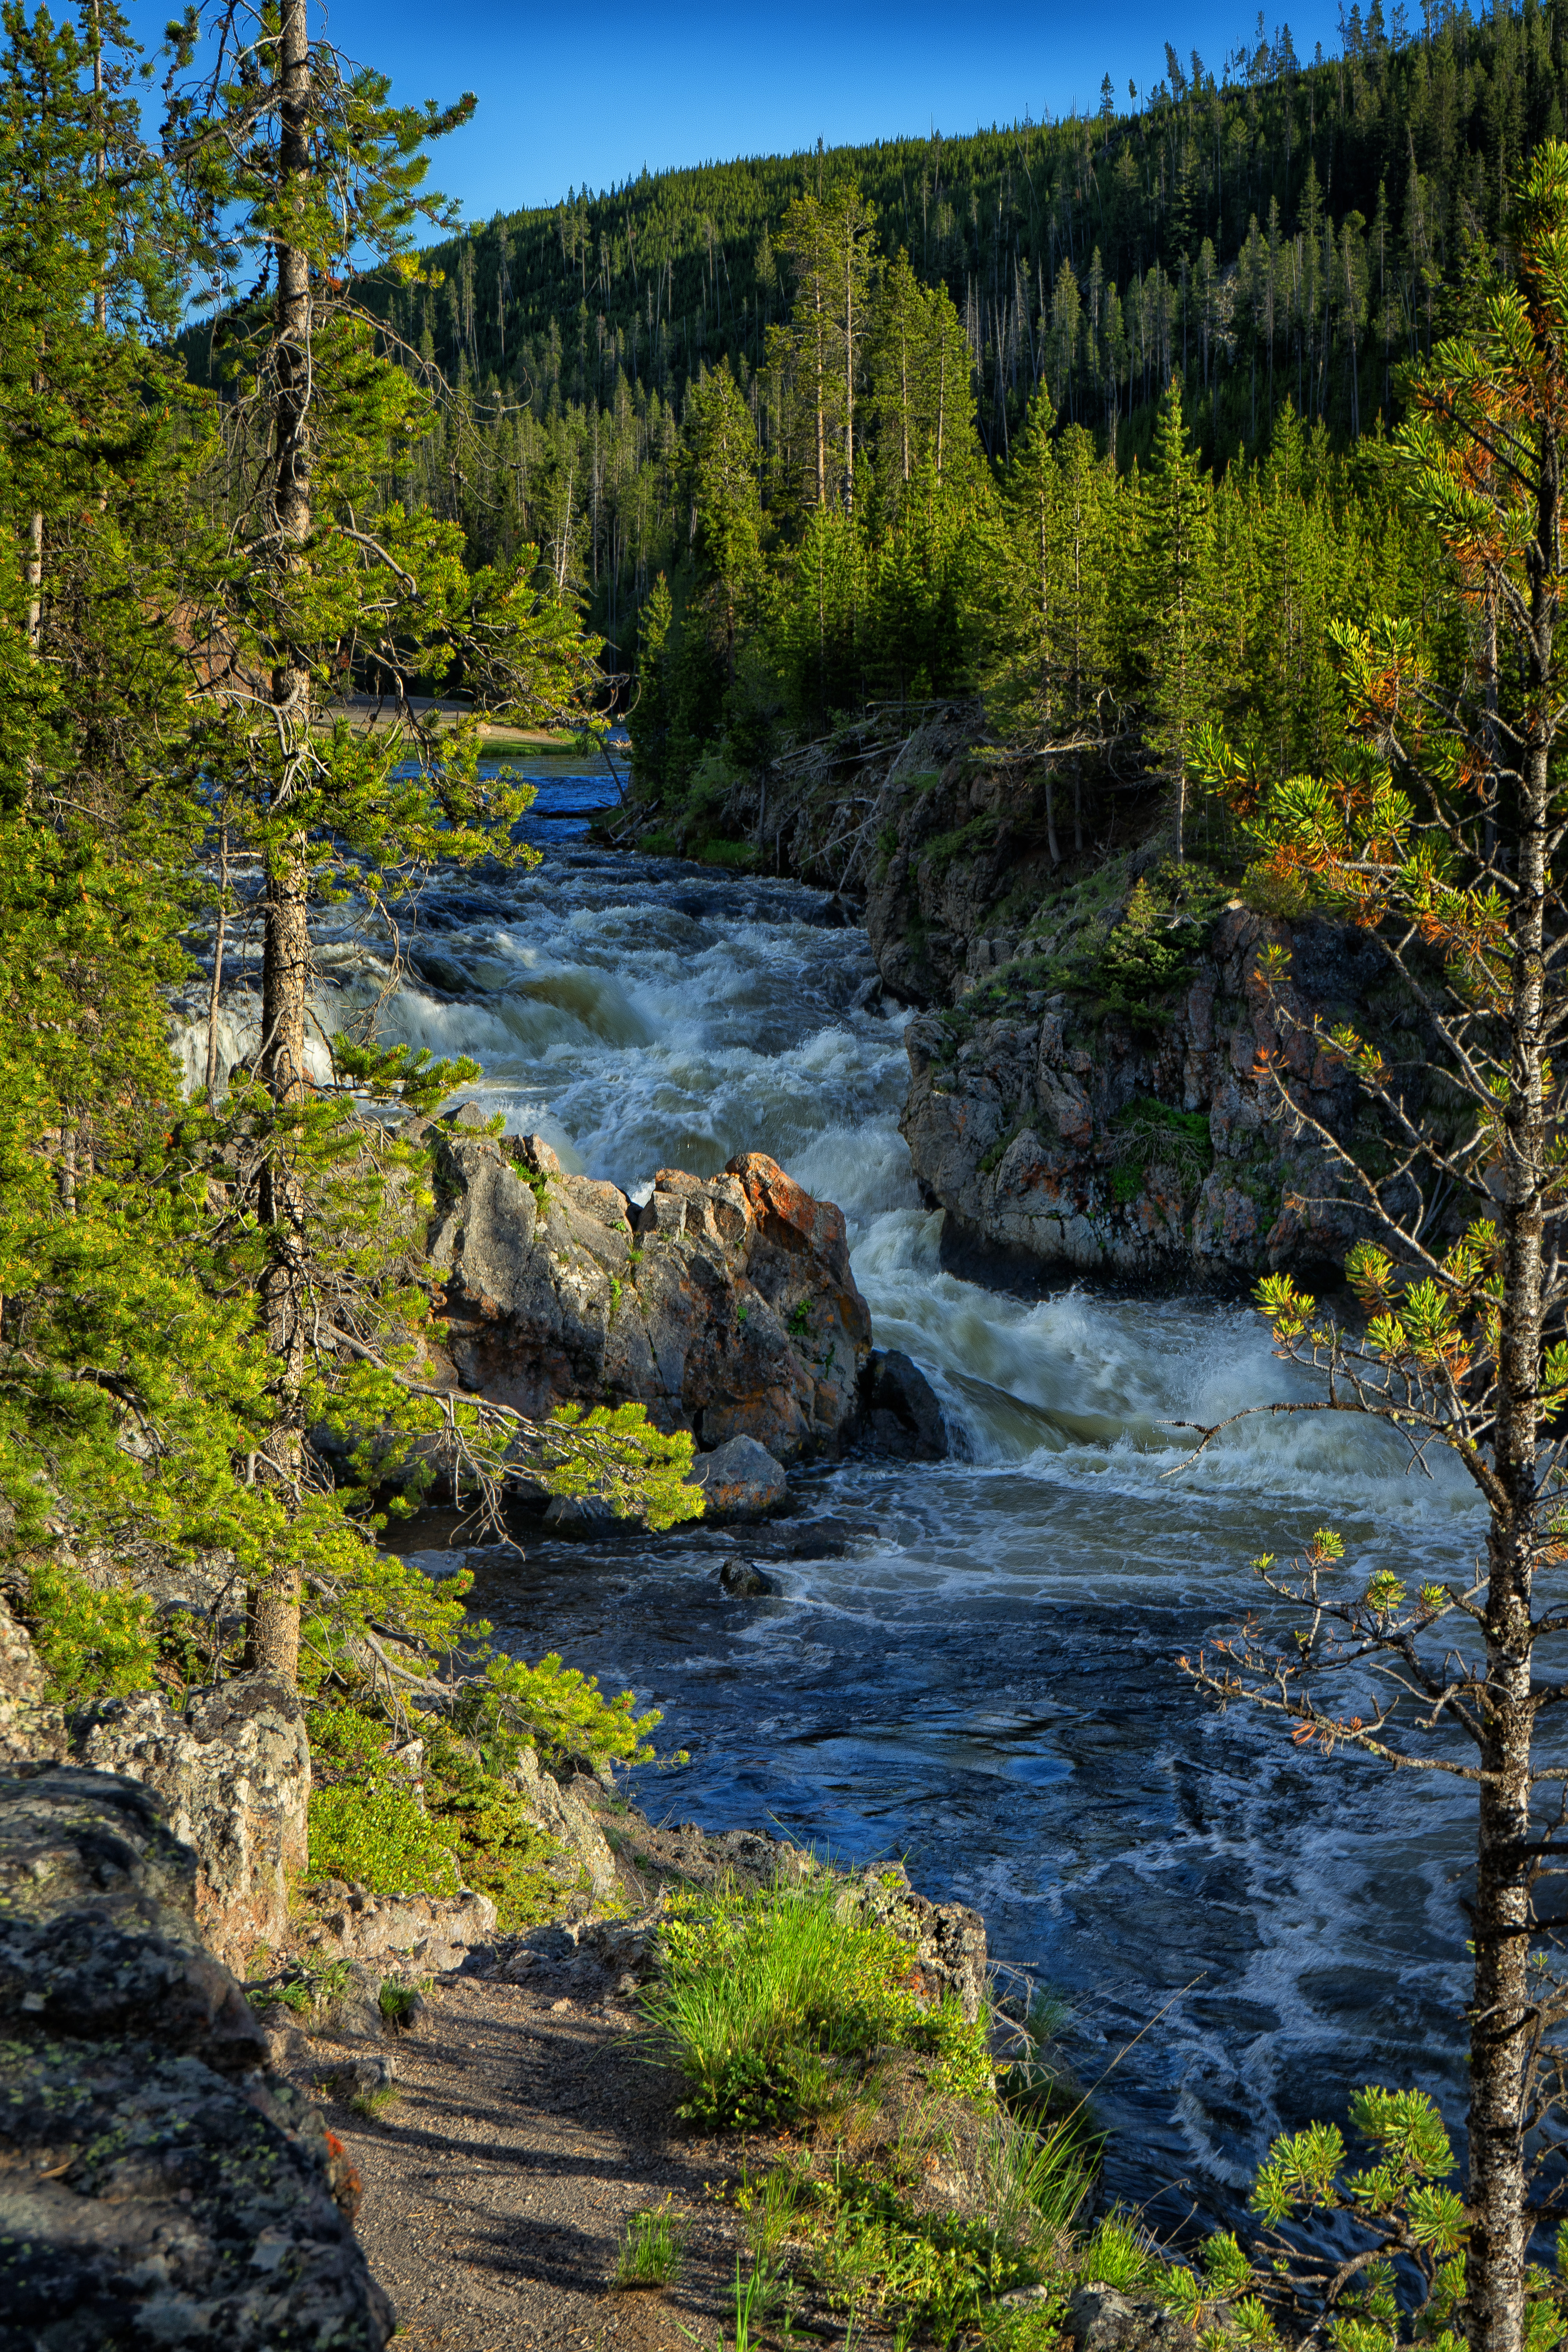 Firehole River Gorge